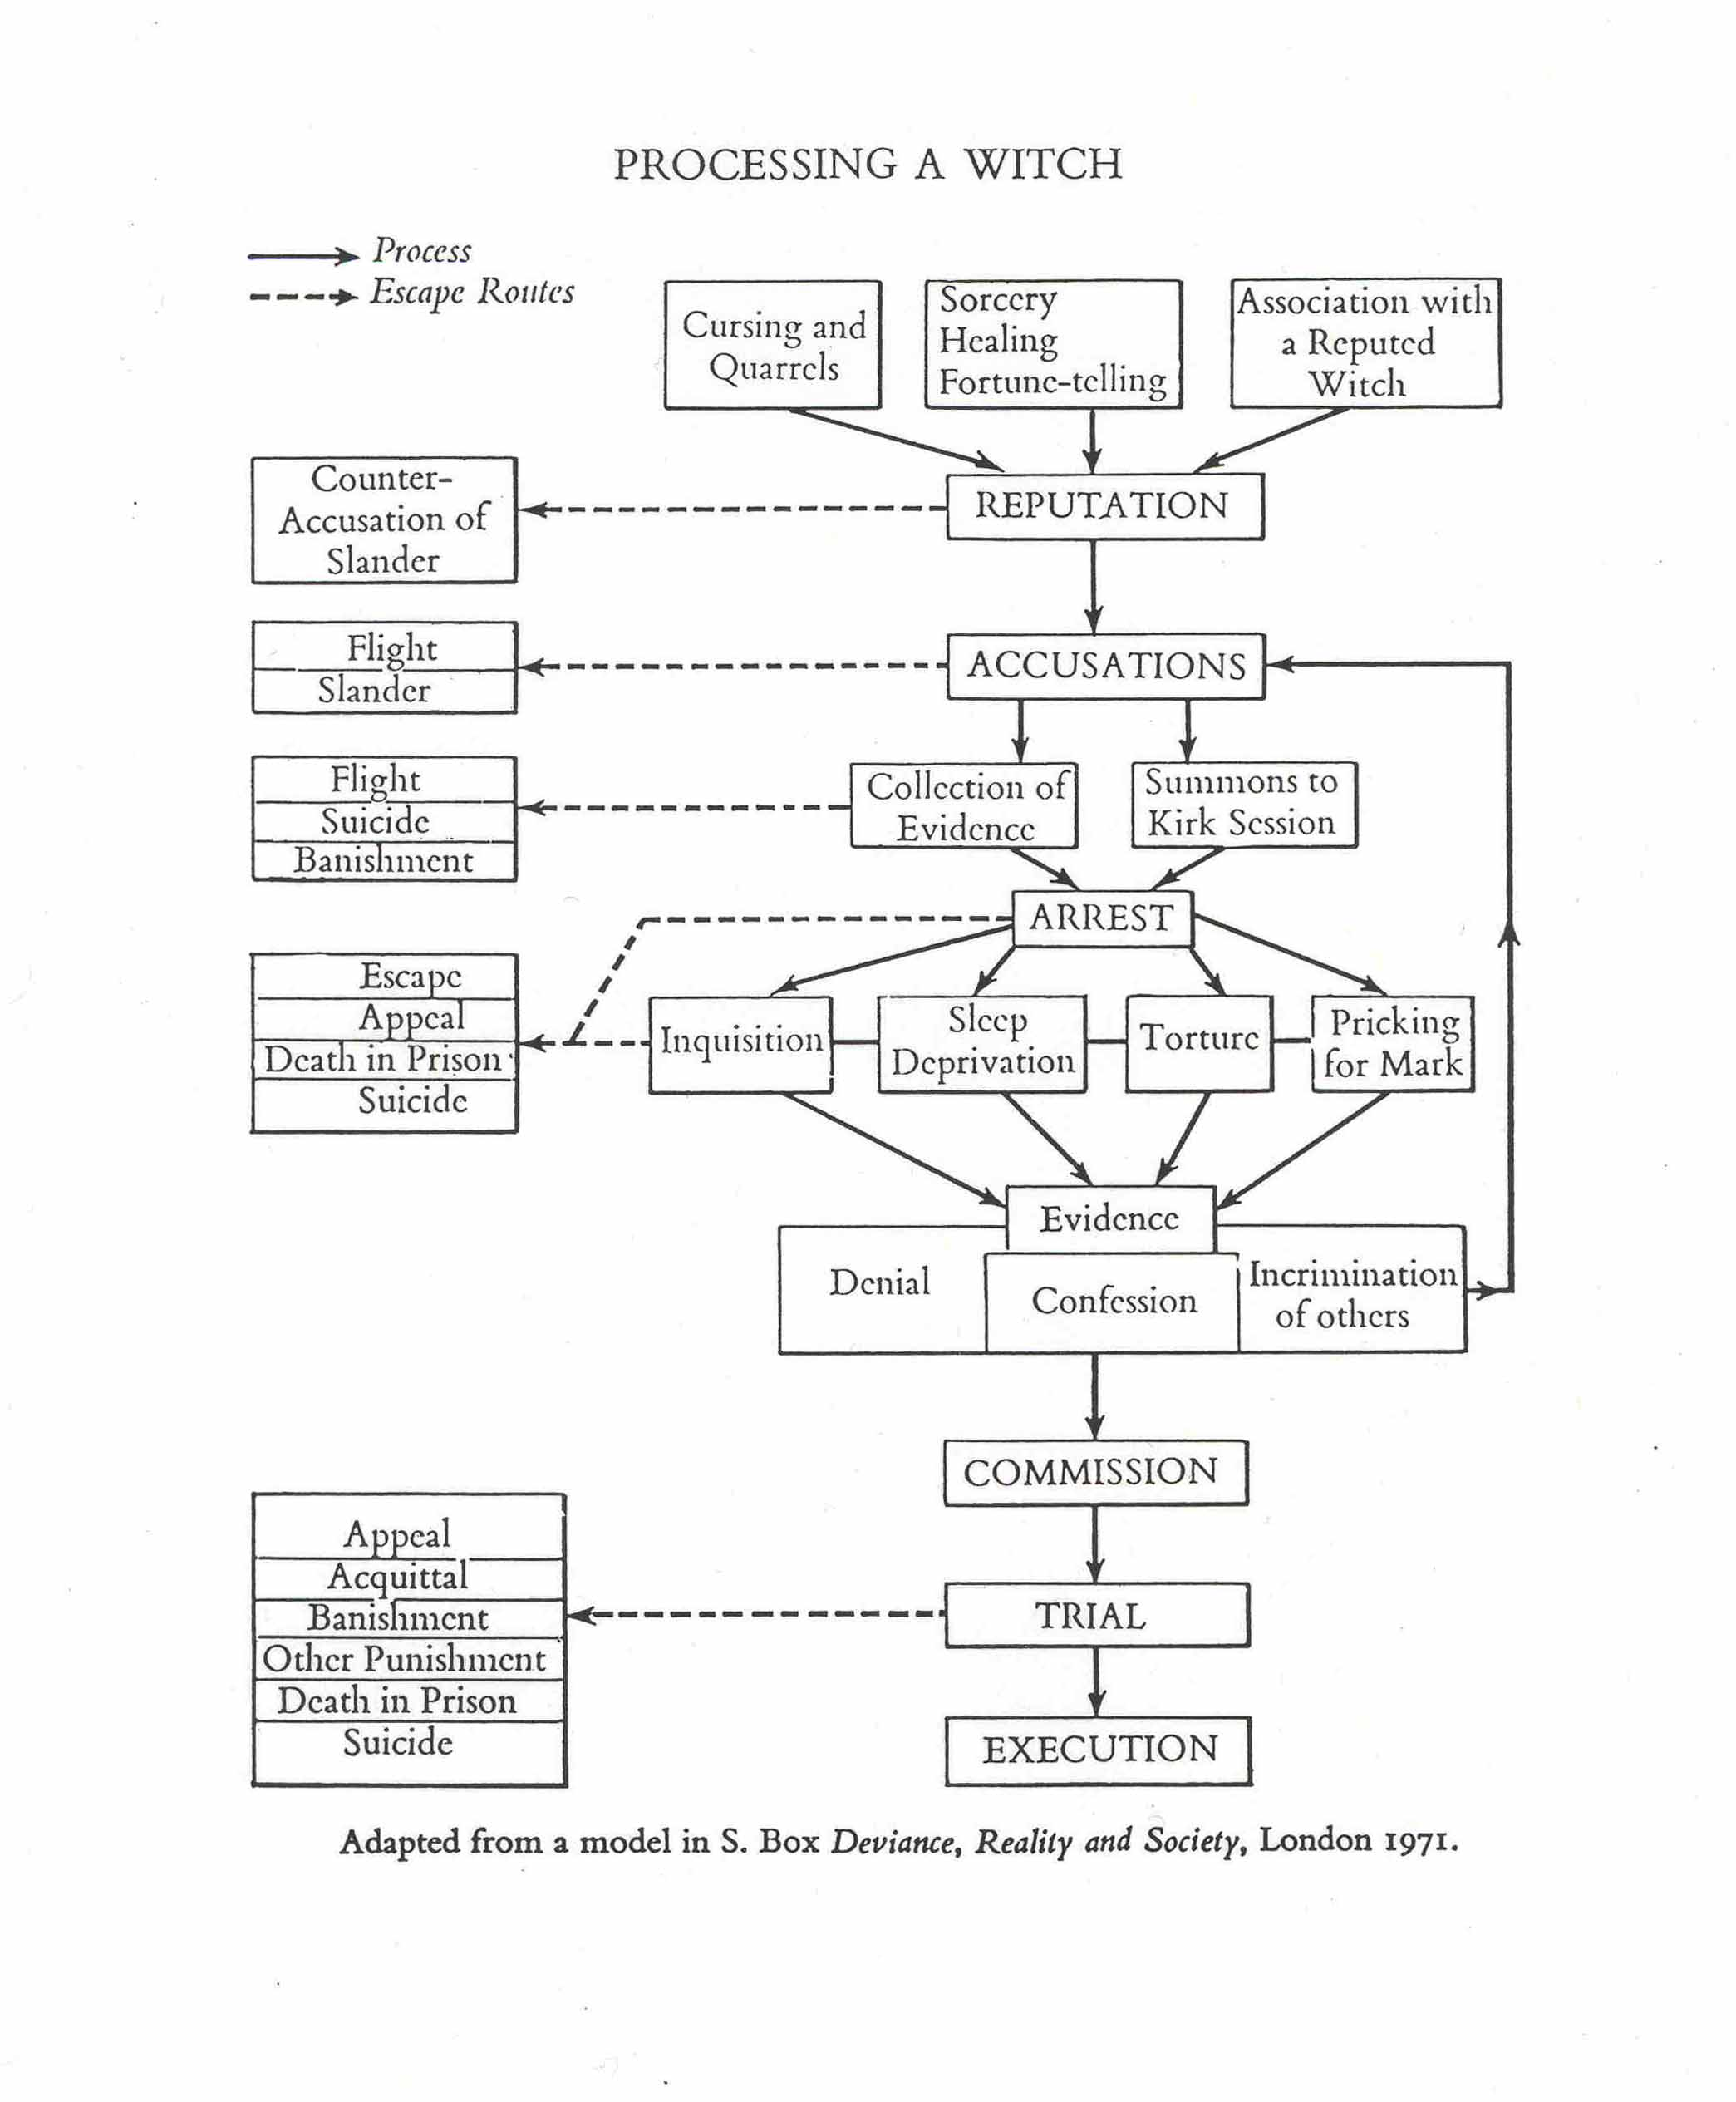 criminal procedure diagram blue sea 7610 wiring proccessing the witch chart was adapted by christina larner in her path breaking analysis of trials scotland where a version roman law